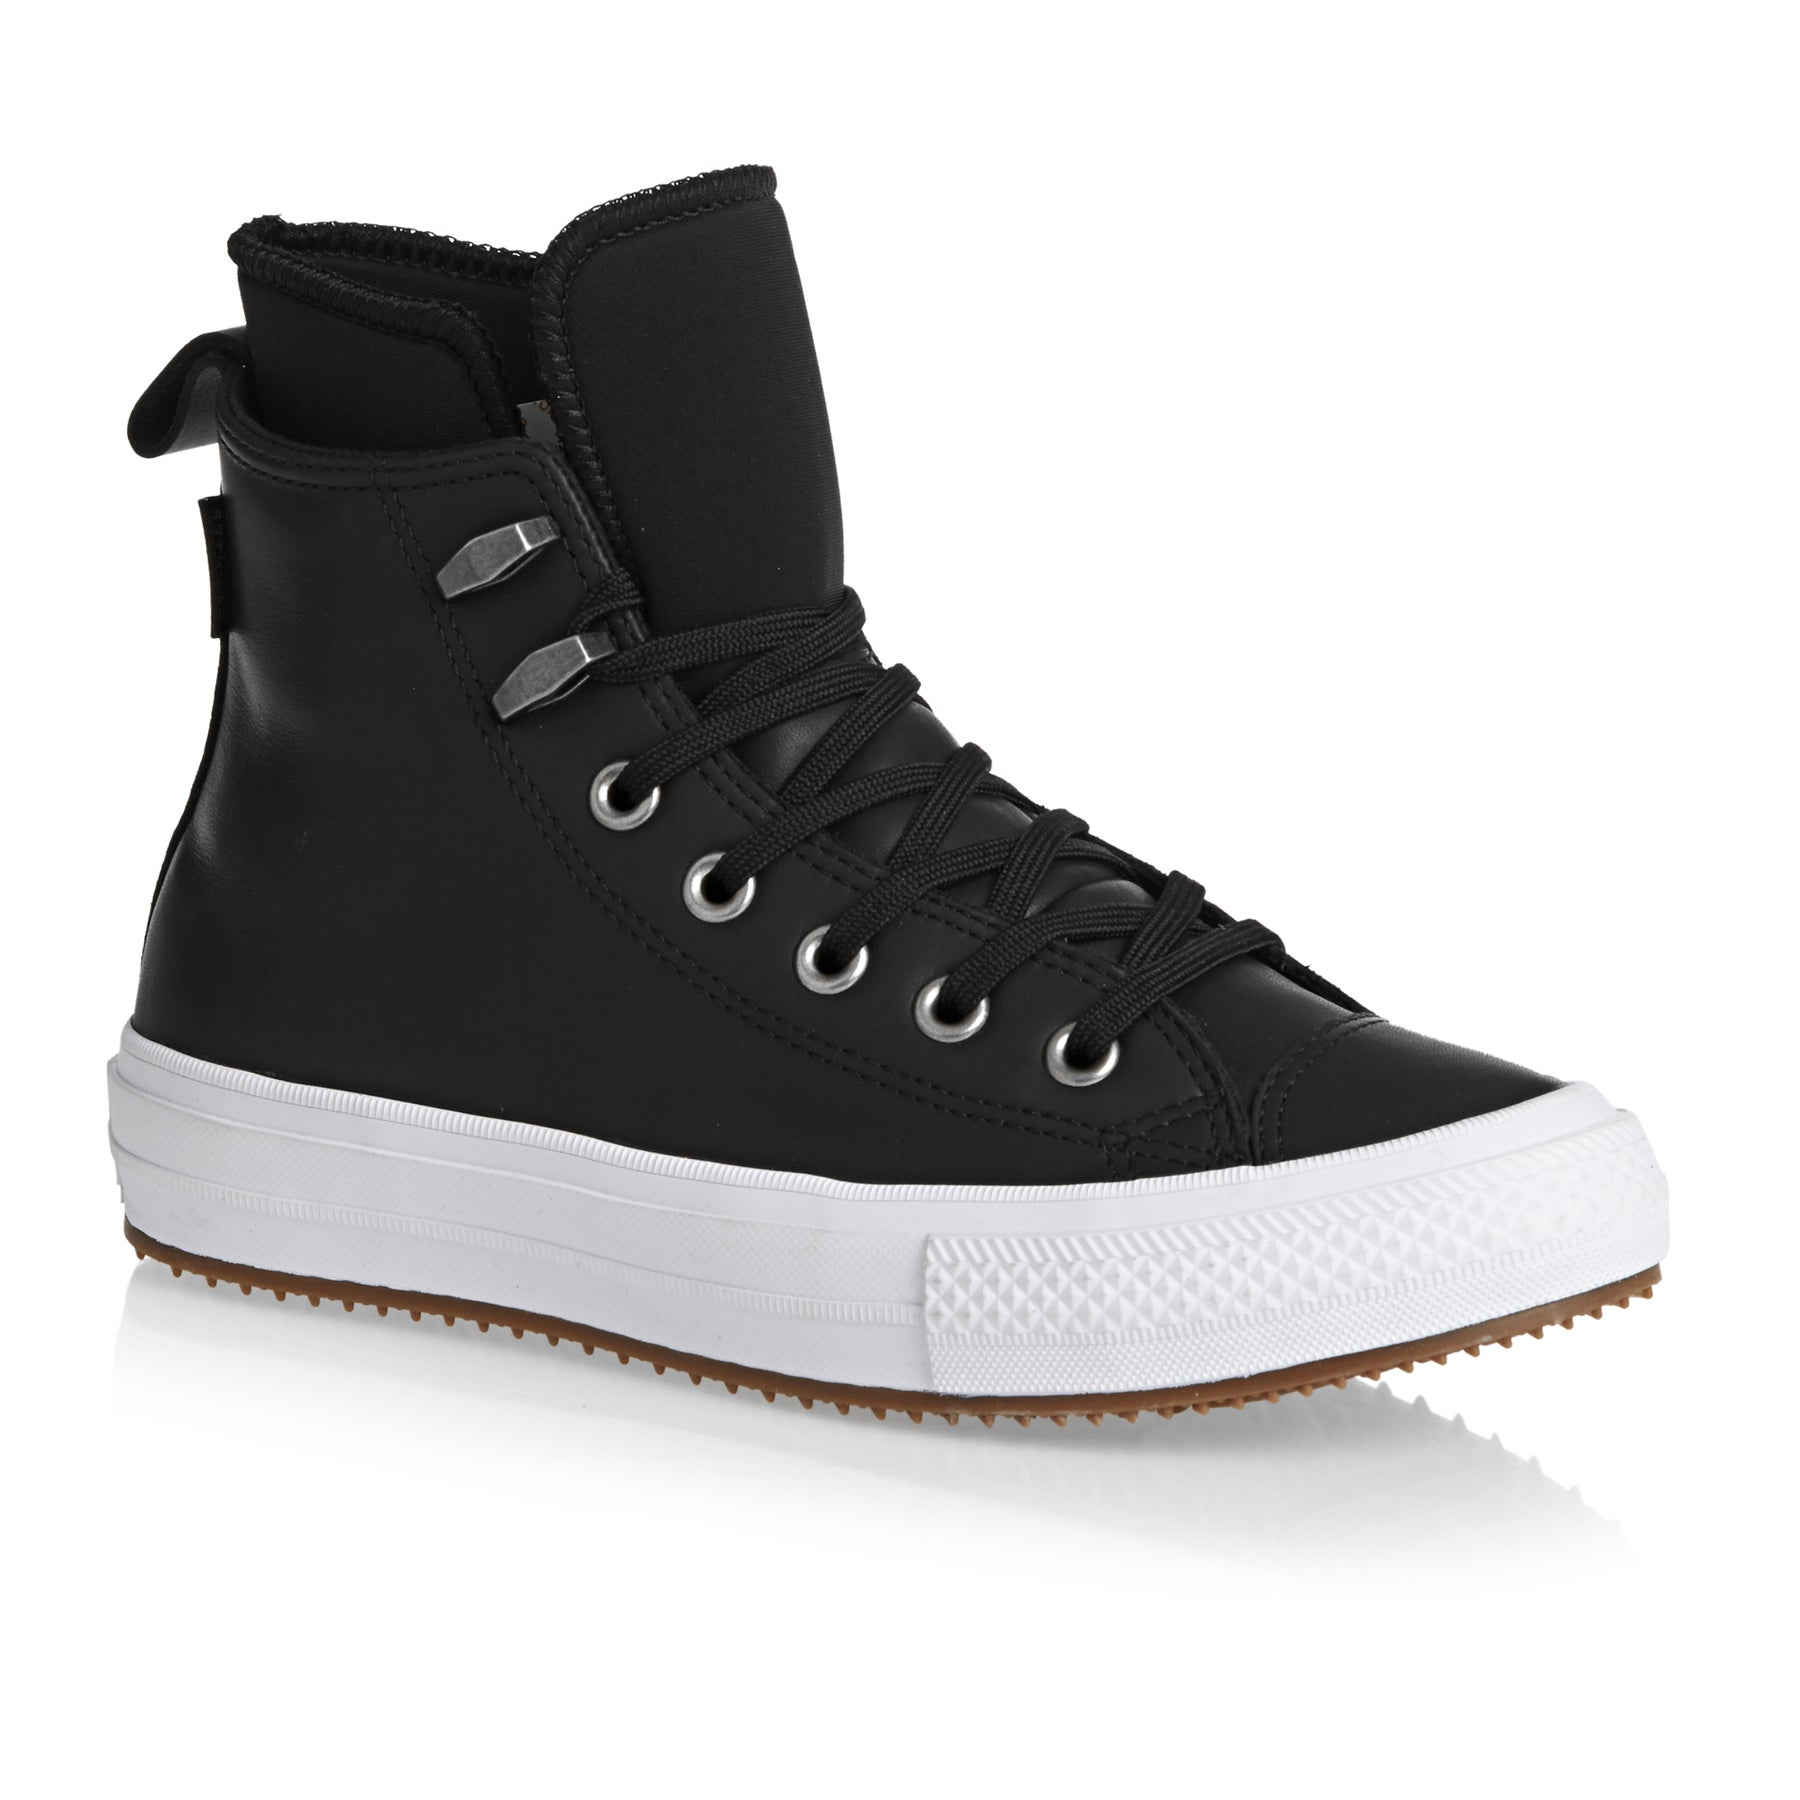 Converse Chuck Taylor All Star Waterproof Womens Shoes - Black/White